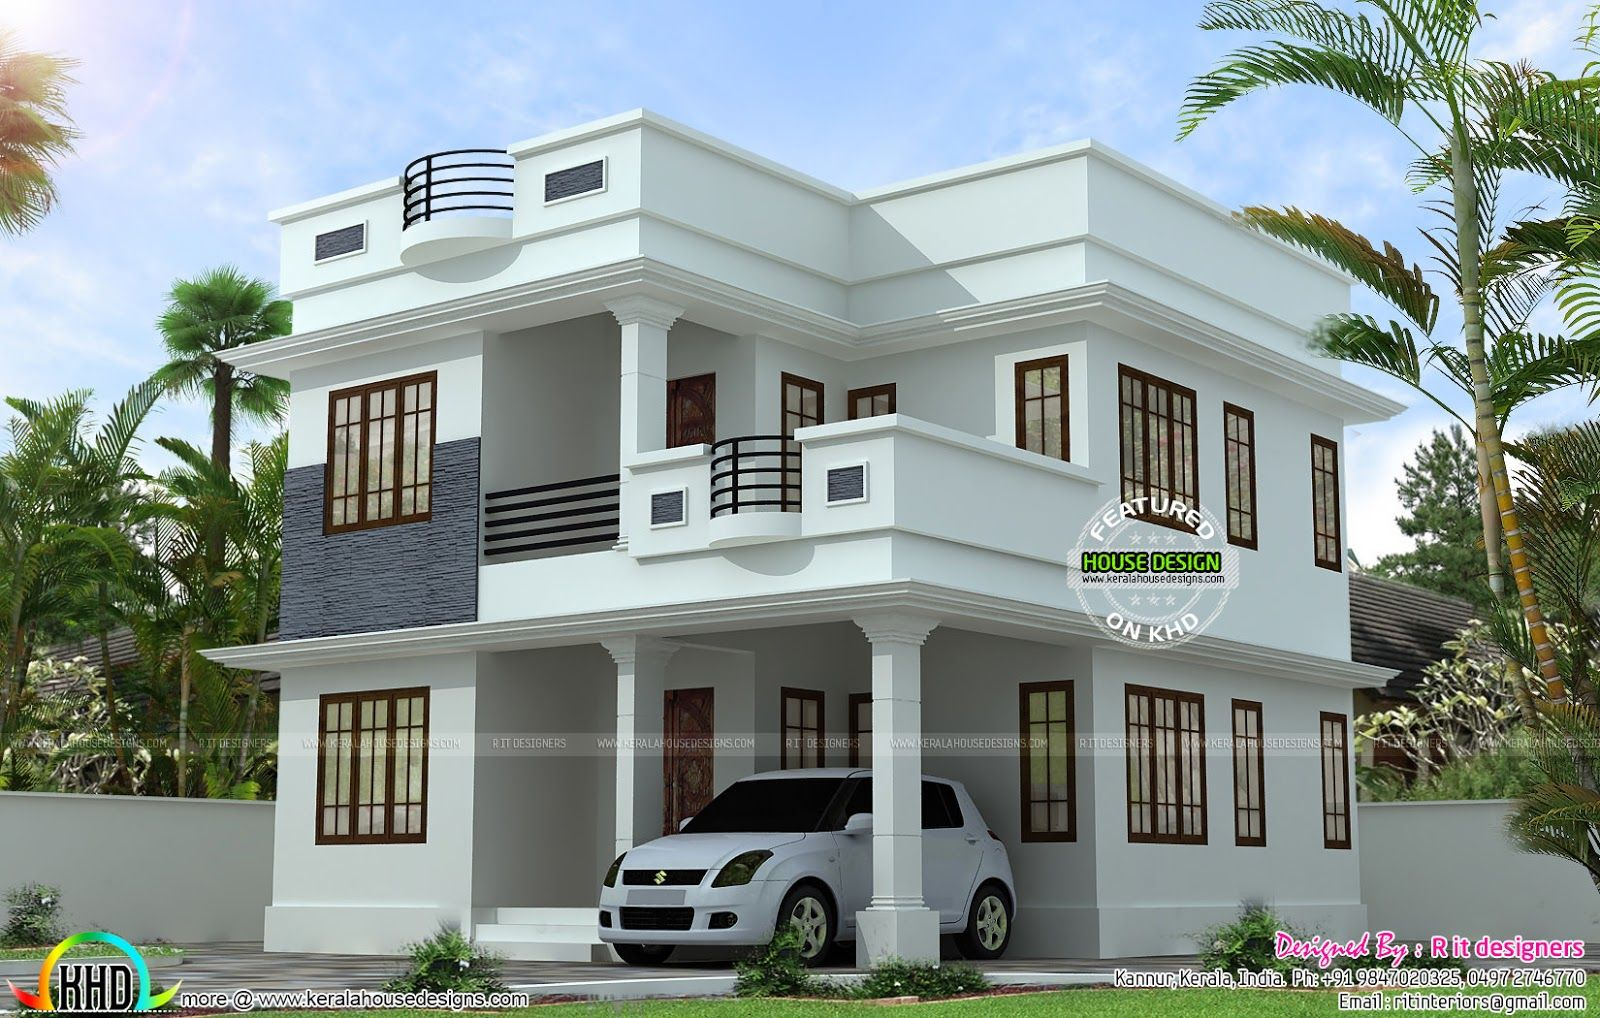 House. Neat and simple small house plan   Kerala home design and floor